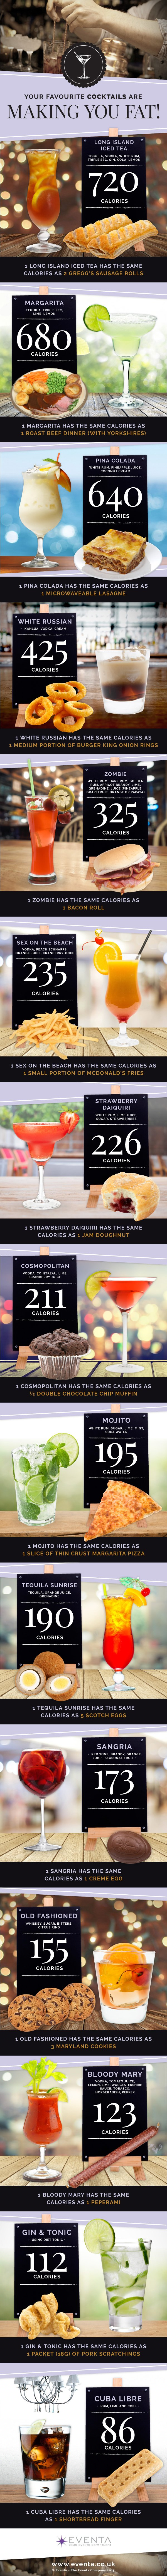 your-favourite-cocktails-are-making-you-fat